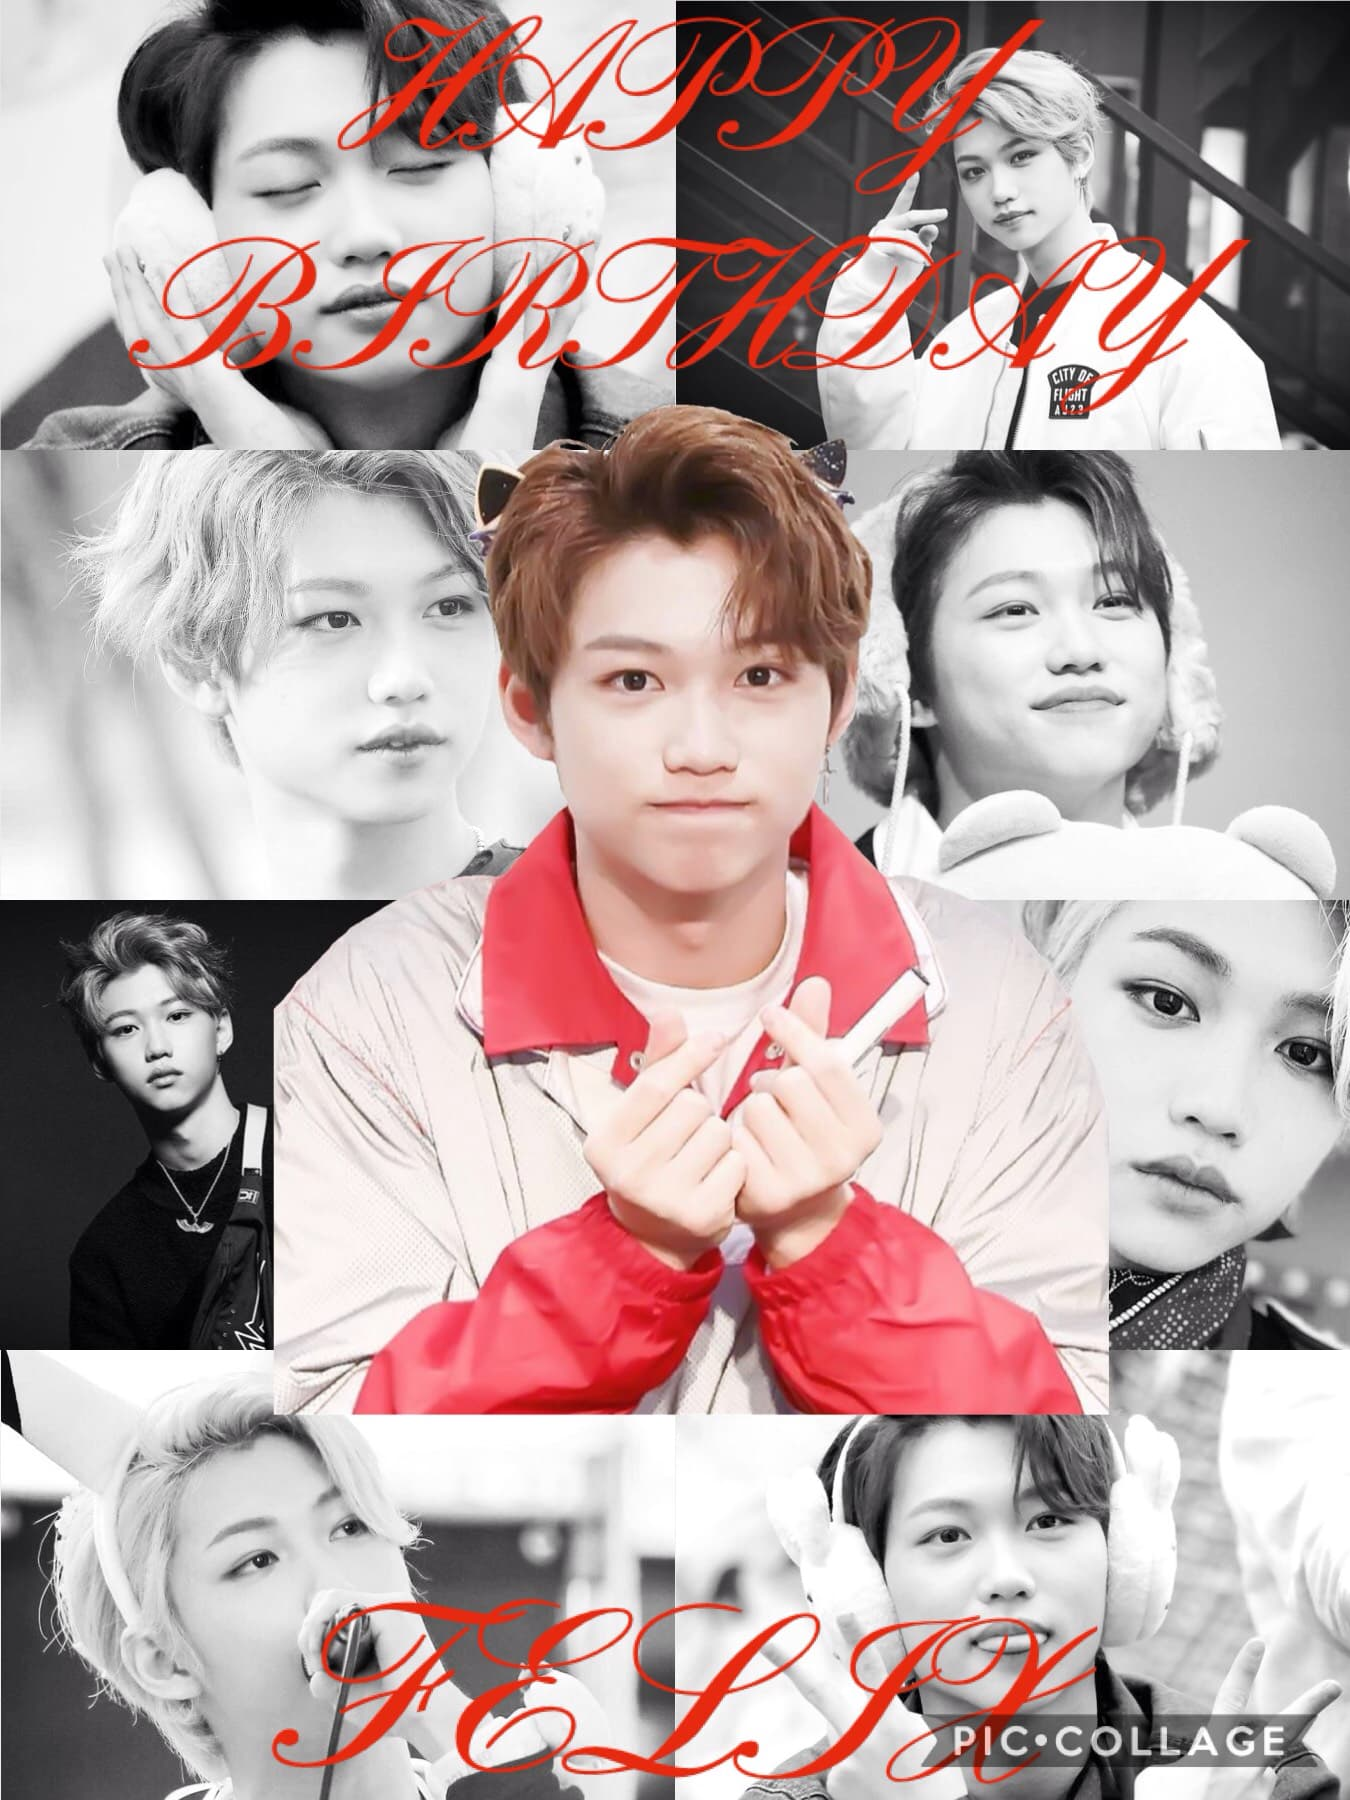 I just started listening to Stray Kids 3 days ago and I already know his birthday, I have a problem. Sorry that I haven't posted an actual edit, I will try to soon. Anyways, HAPPY BIRTHDAY TO THIS BEAUTIFUL AMAZING HUMAN BEING!!!